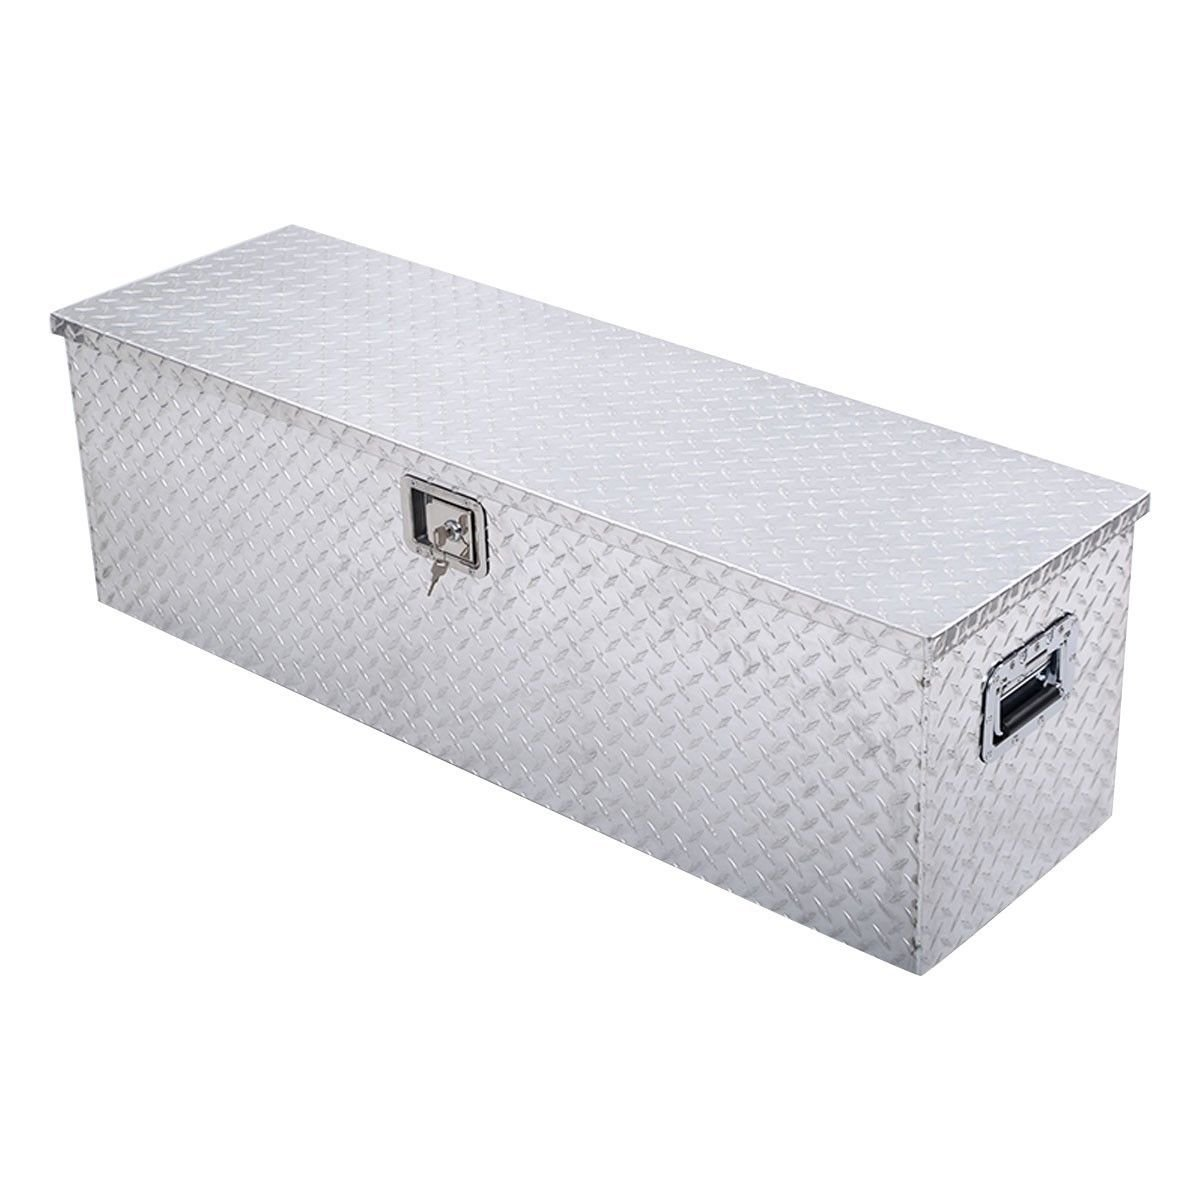 Giantex 49 x15 Aluminum Tool Box Tote Storage for Truck Pickup Bed Trailer Tongue W Lock 49 L